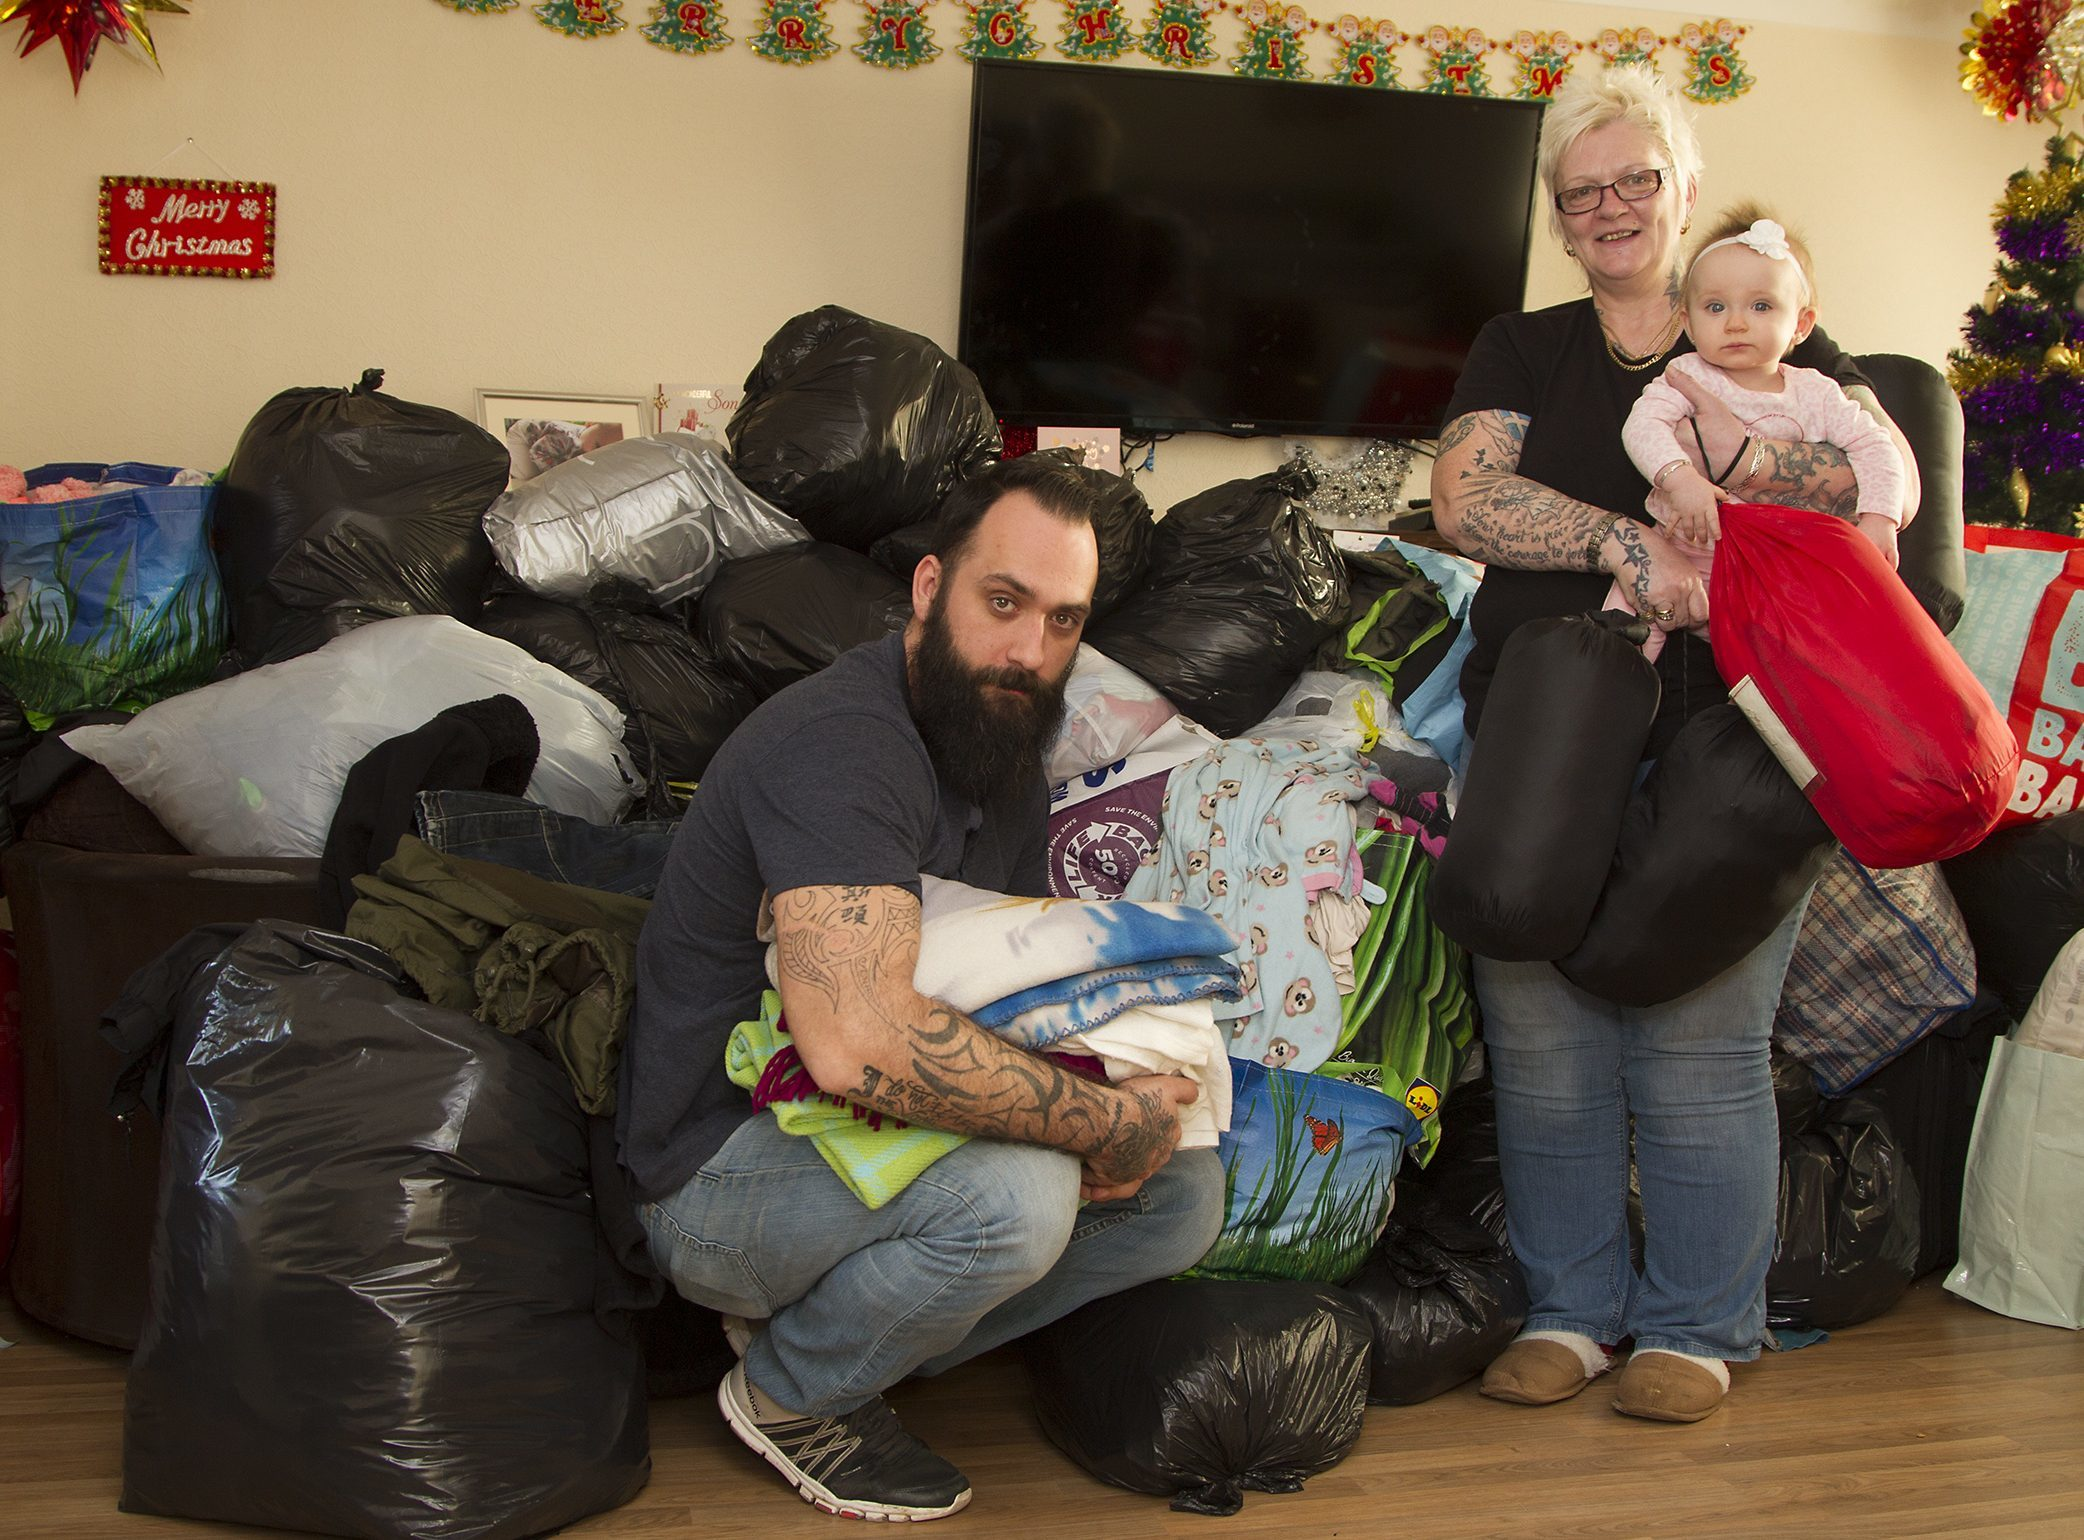 Christian with his daughter Elizabeth and his mum Lesley Whittet with mountains of donated gifts that he plans to distribute on Saturday.